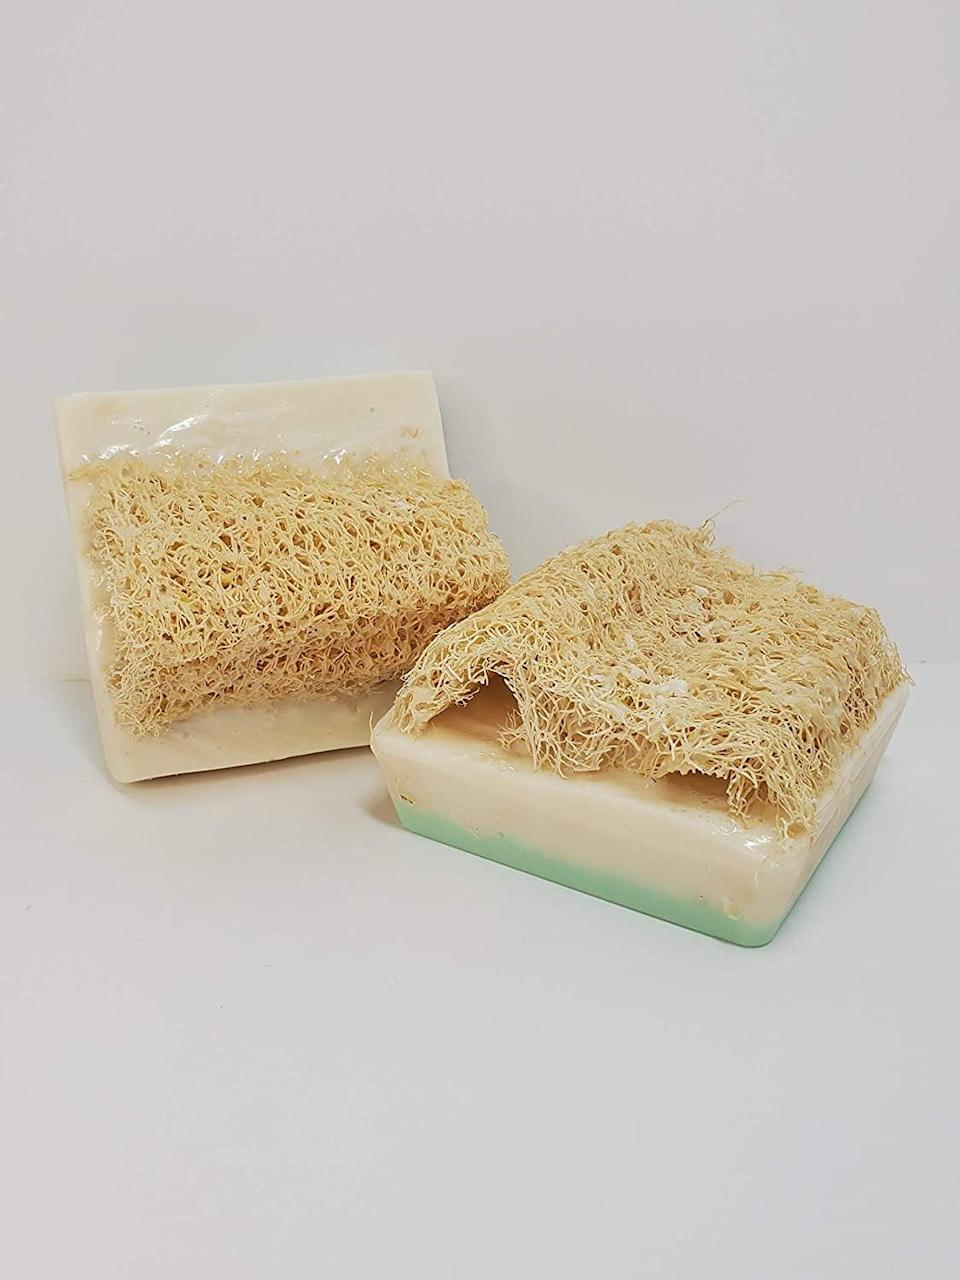 <p>Exfoliate and cleanse with the <span>Luffa Soap Eucalyptus Rosemary Exfoliating Soap</span> ($8), made with a natural loofah sponge.</p>